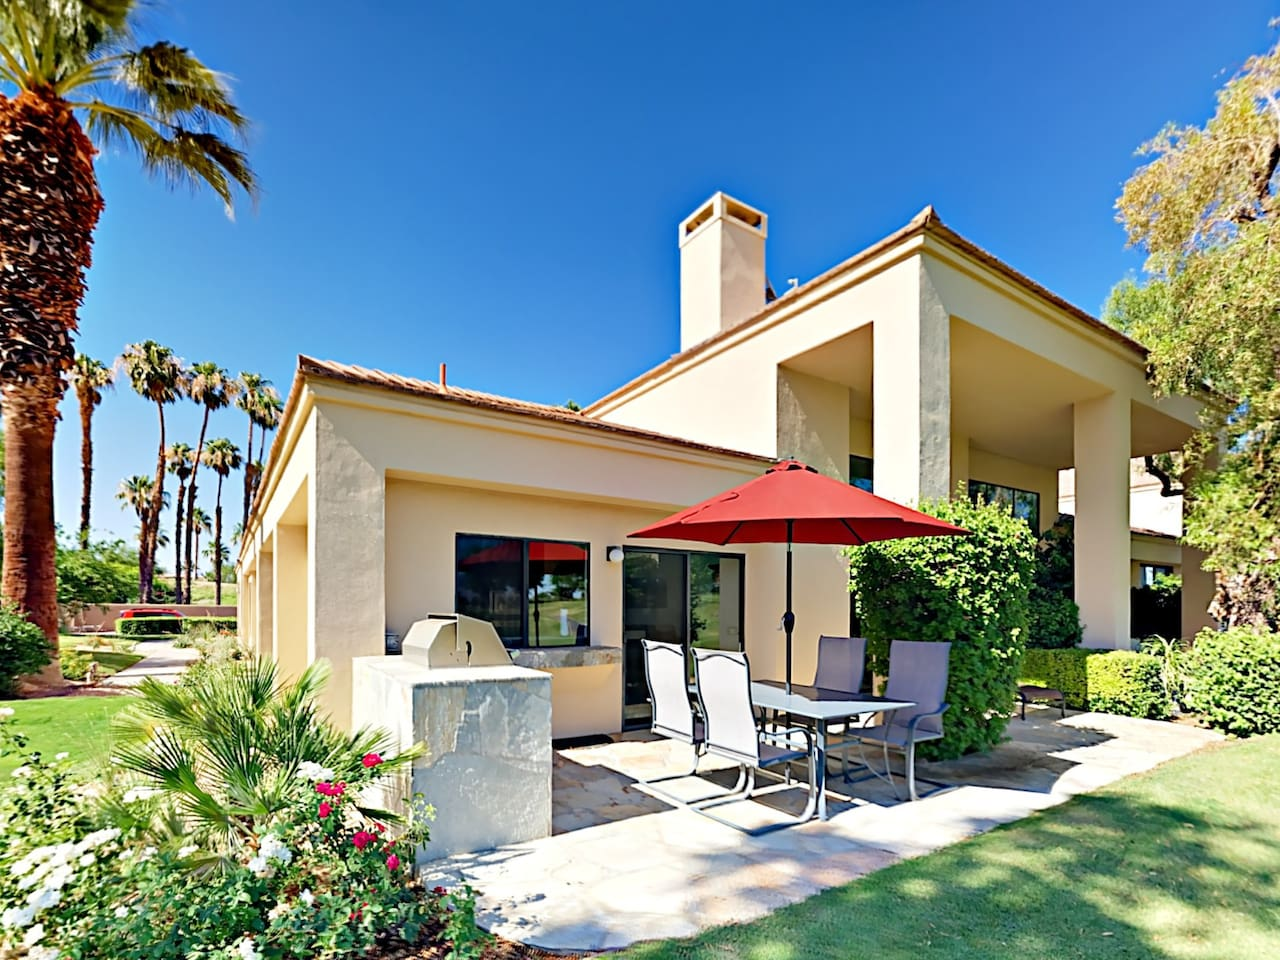 Welcome to La Quinta! Your condo comes with a private patio, professionally managed and maintained by TurnKey Vacation Rentals.